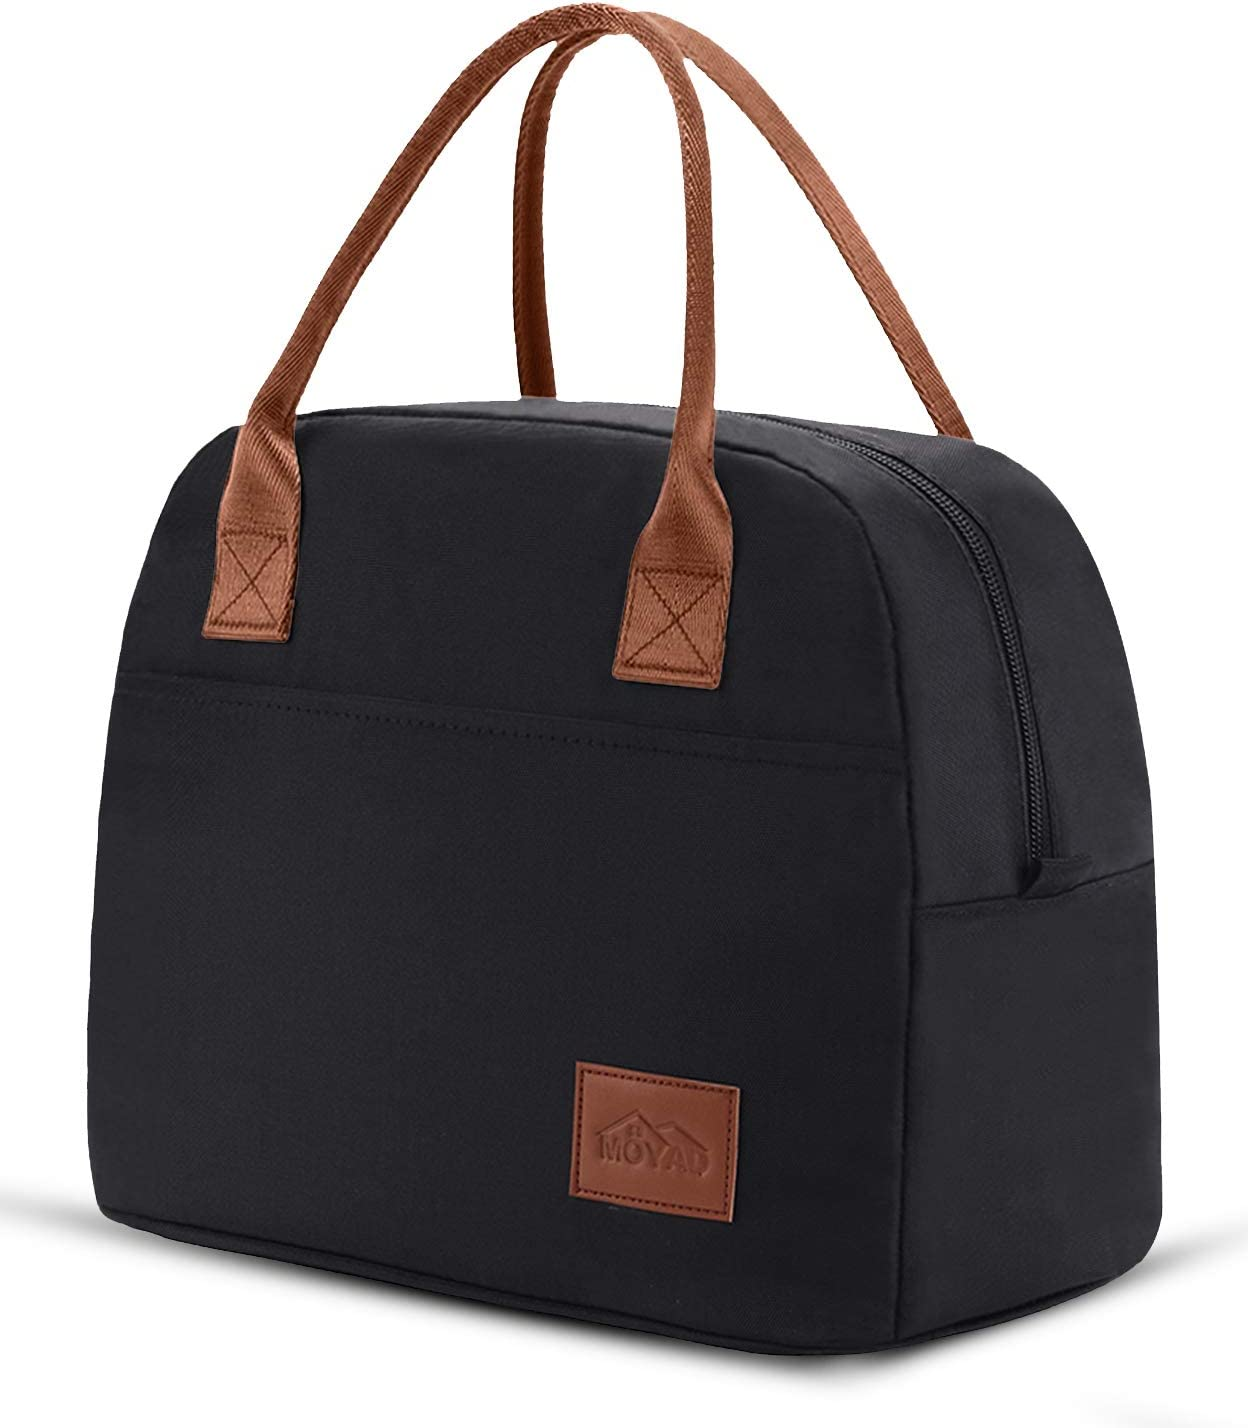 Moyad Lunch Bags for Women Insulated Lunch Bag Tote Adult Lunch Box Cooler Purse for Work 12L Black